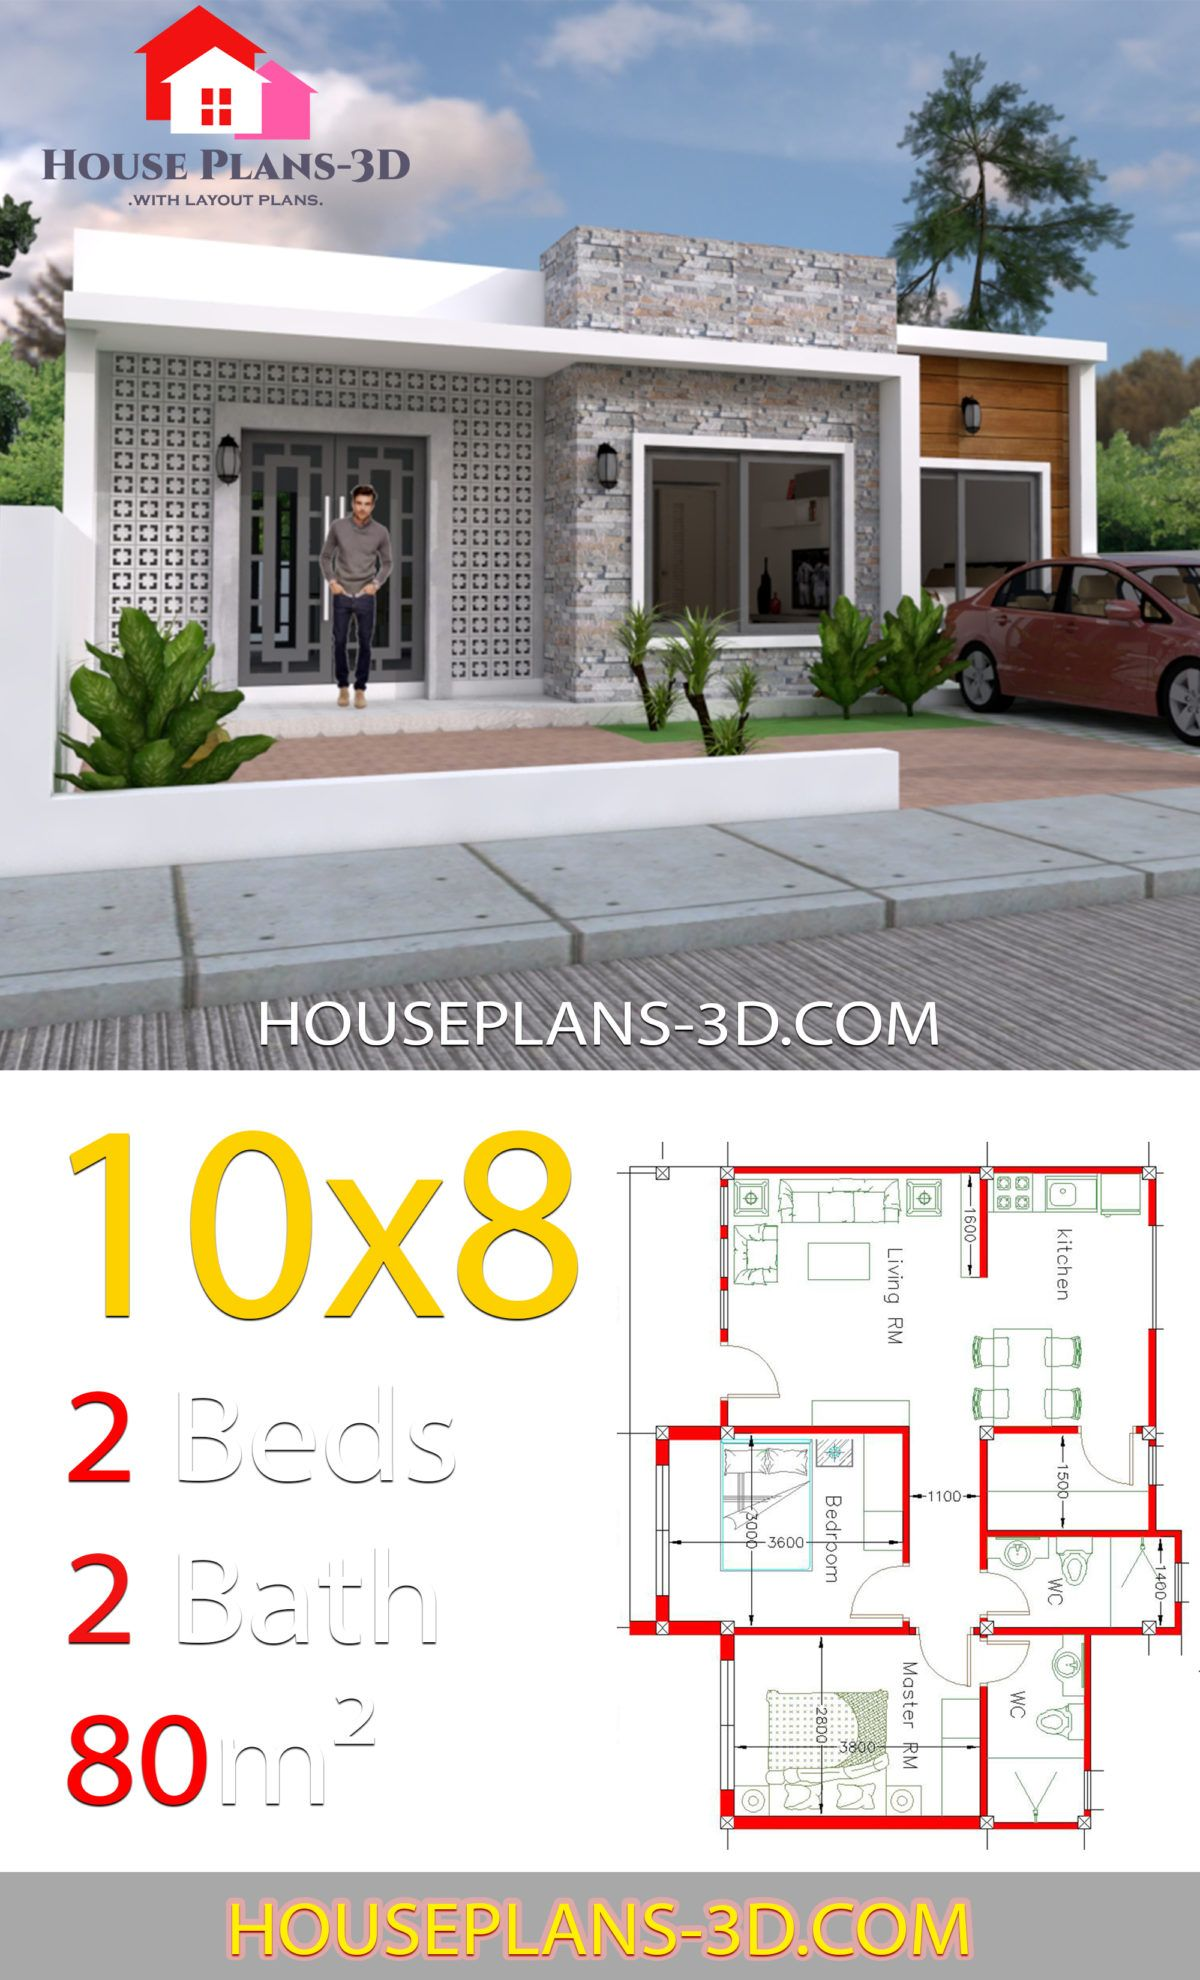 House Design 10x8 With 2 Bedrooms House Plans 3d House Plans 3d House Plans House Front Design